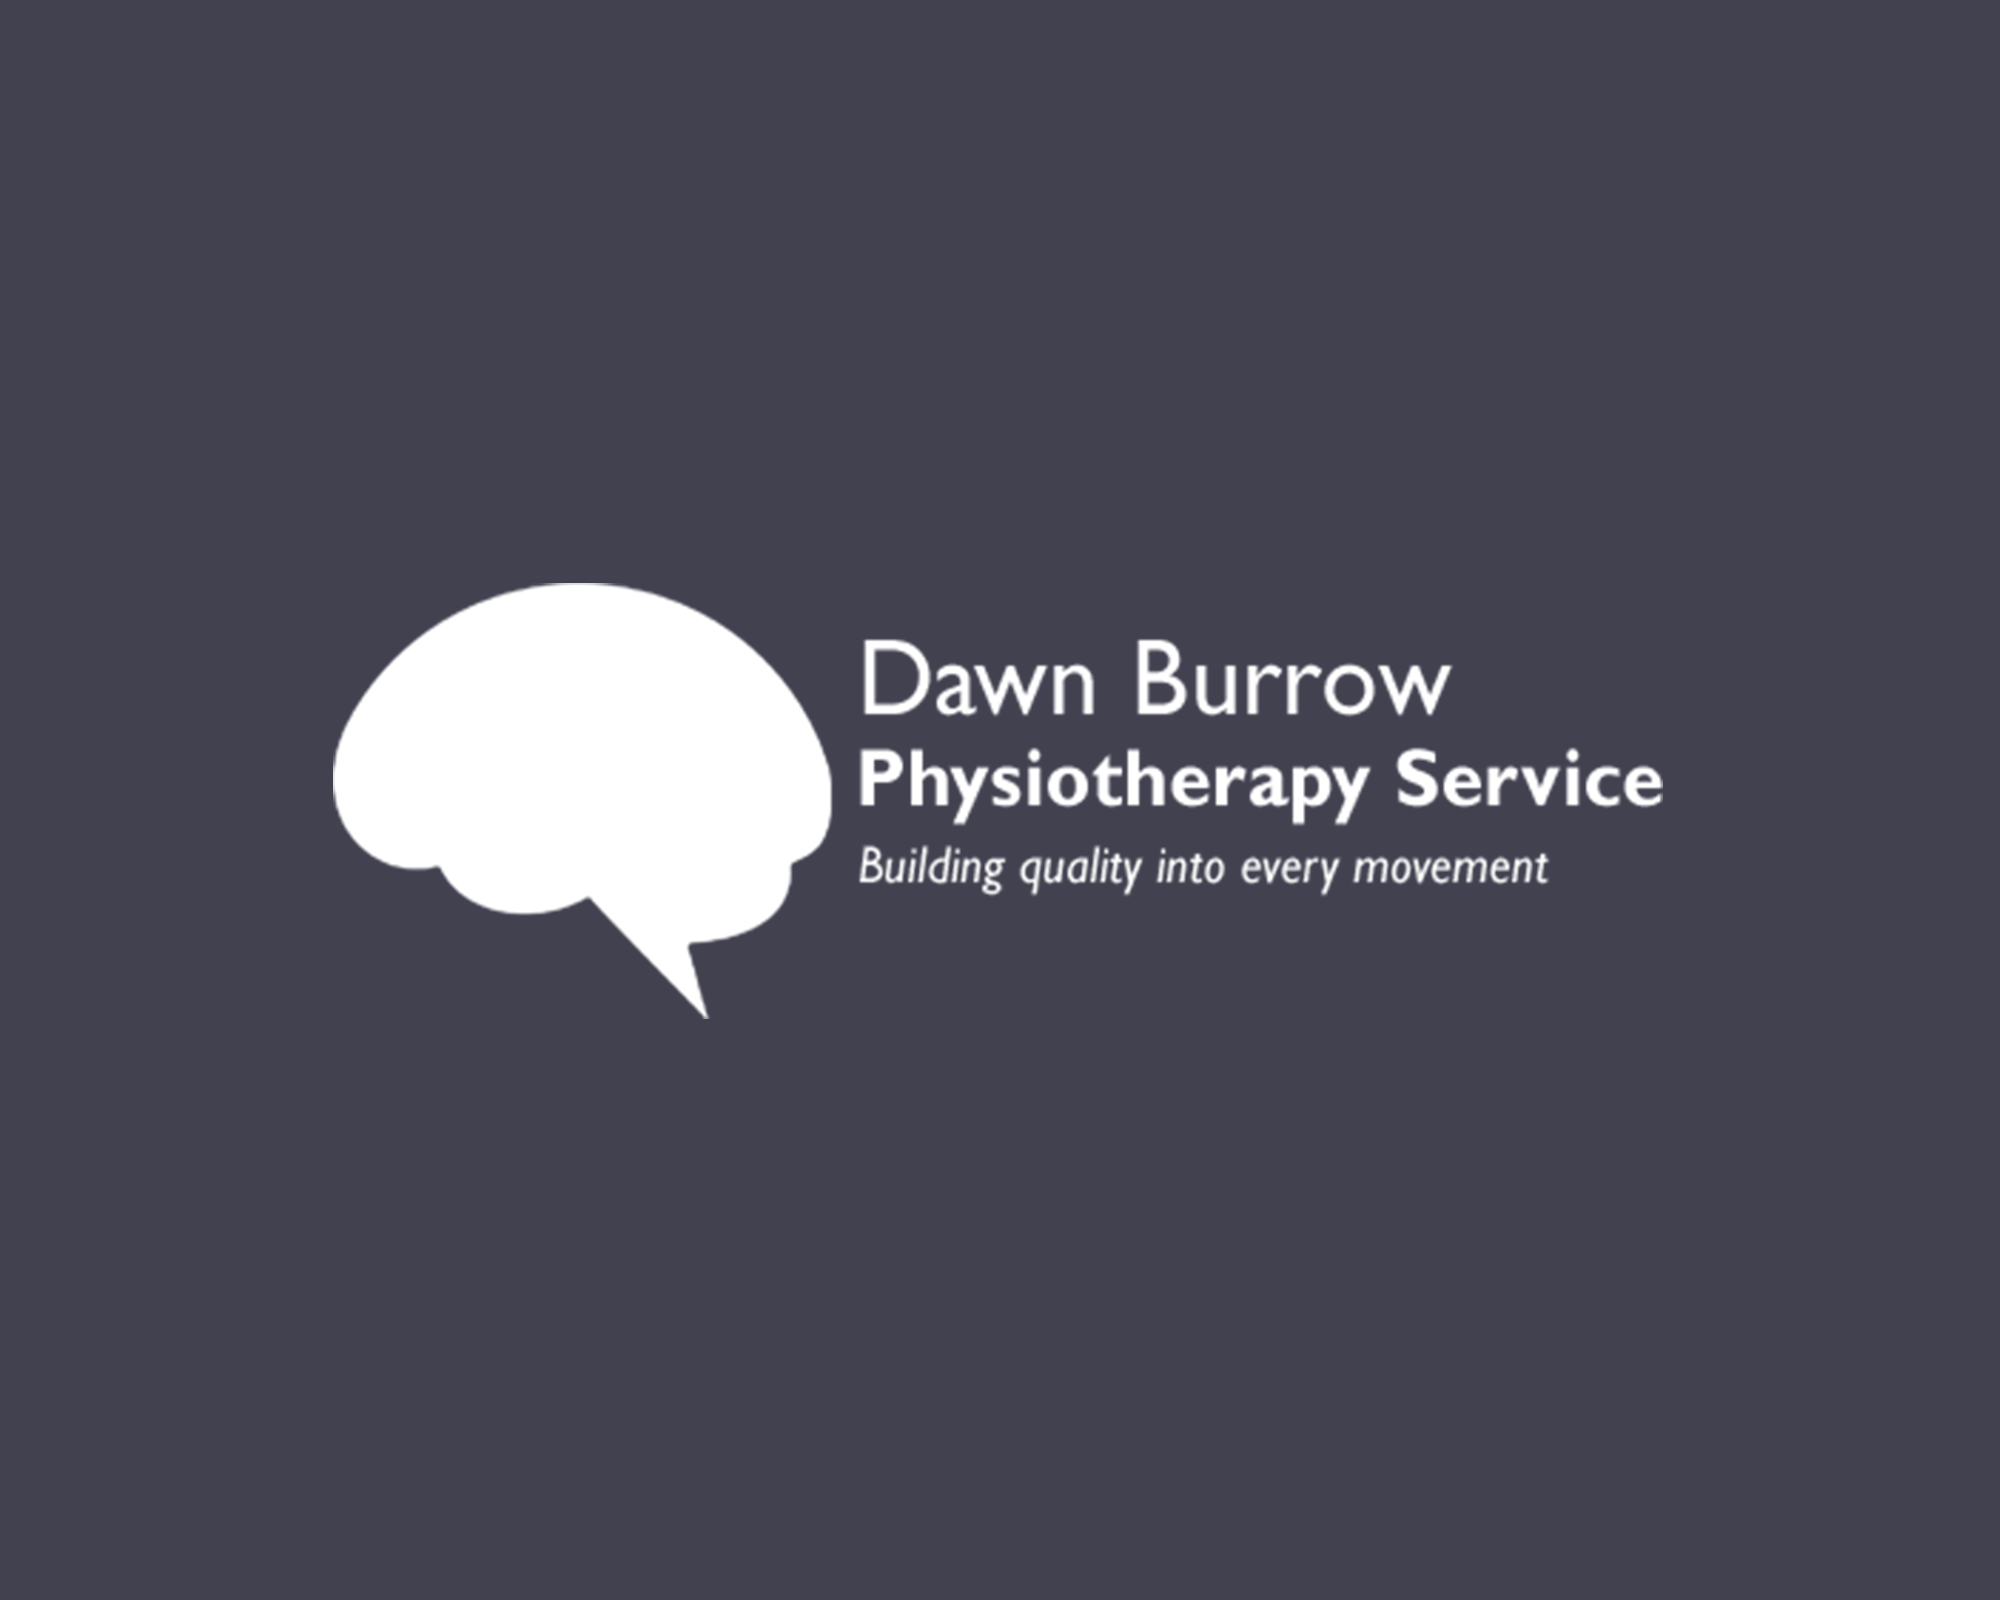 dawn burrow physiotherapy service Logo